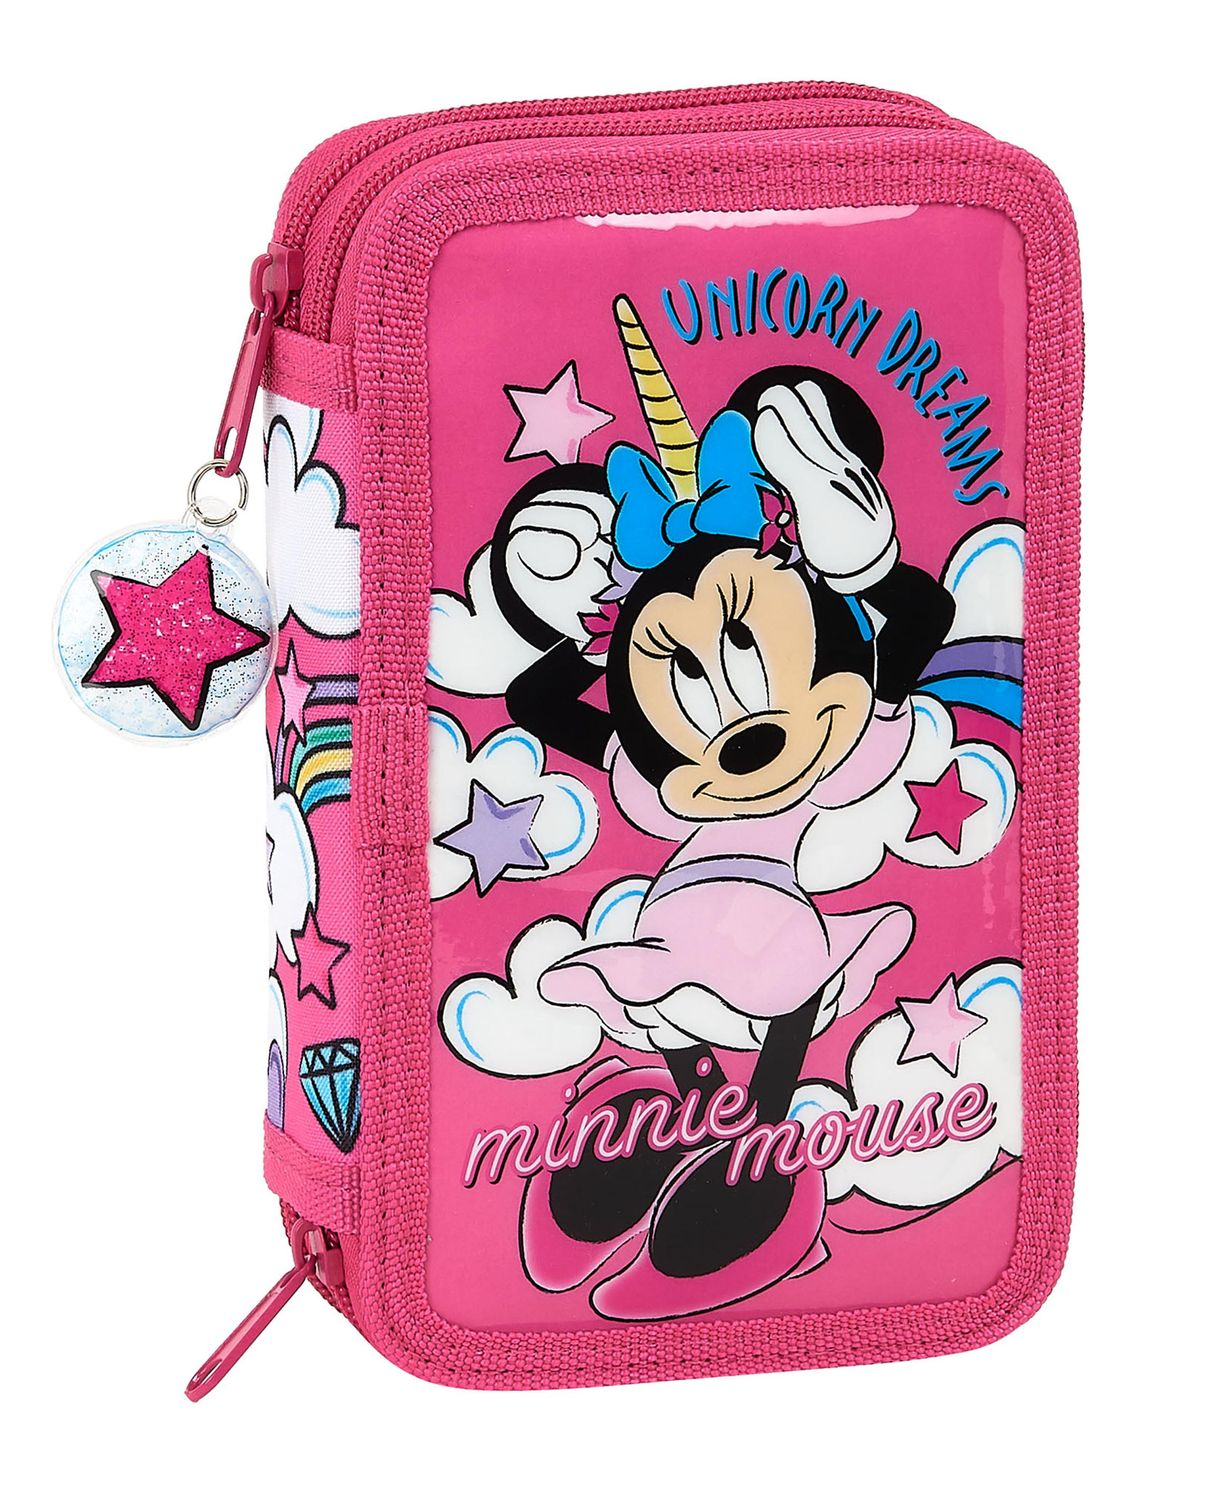 Minnie Mouse UNICORN Double Tier Pencil Case Filled with 28 Piece – image 1